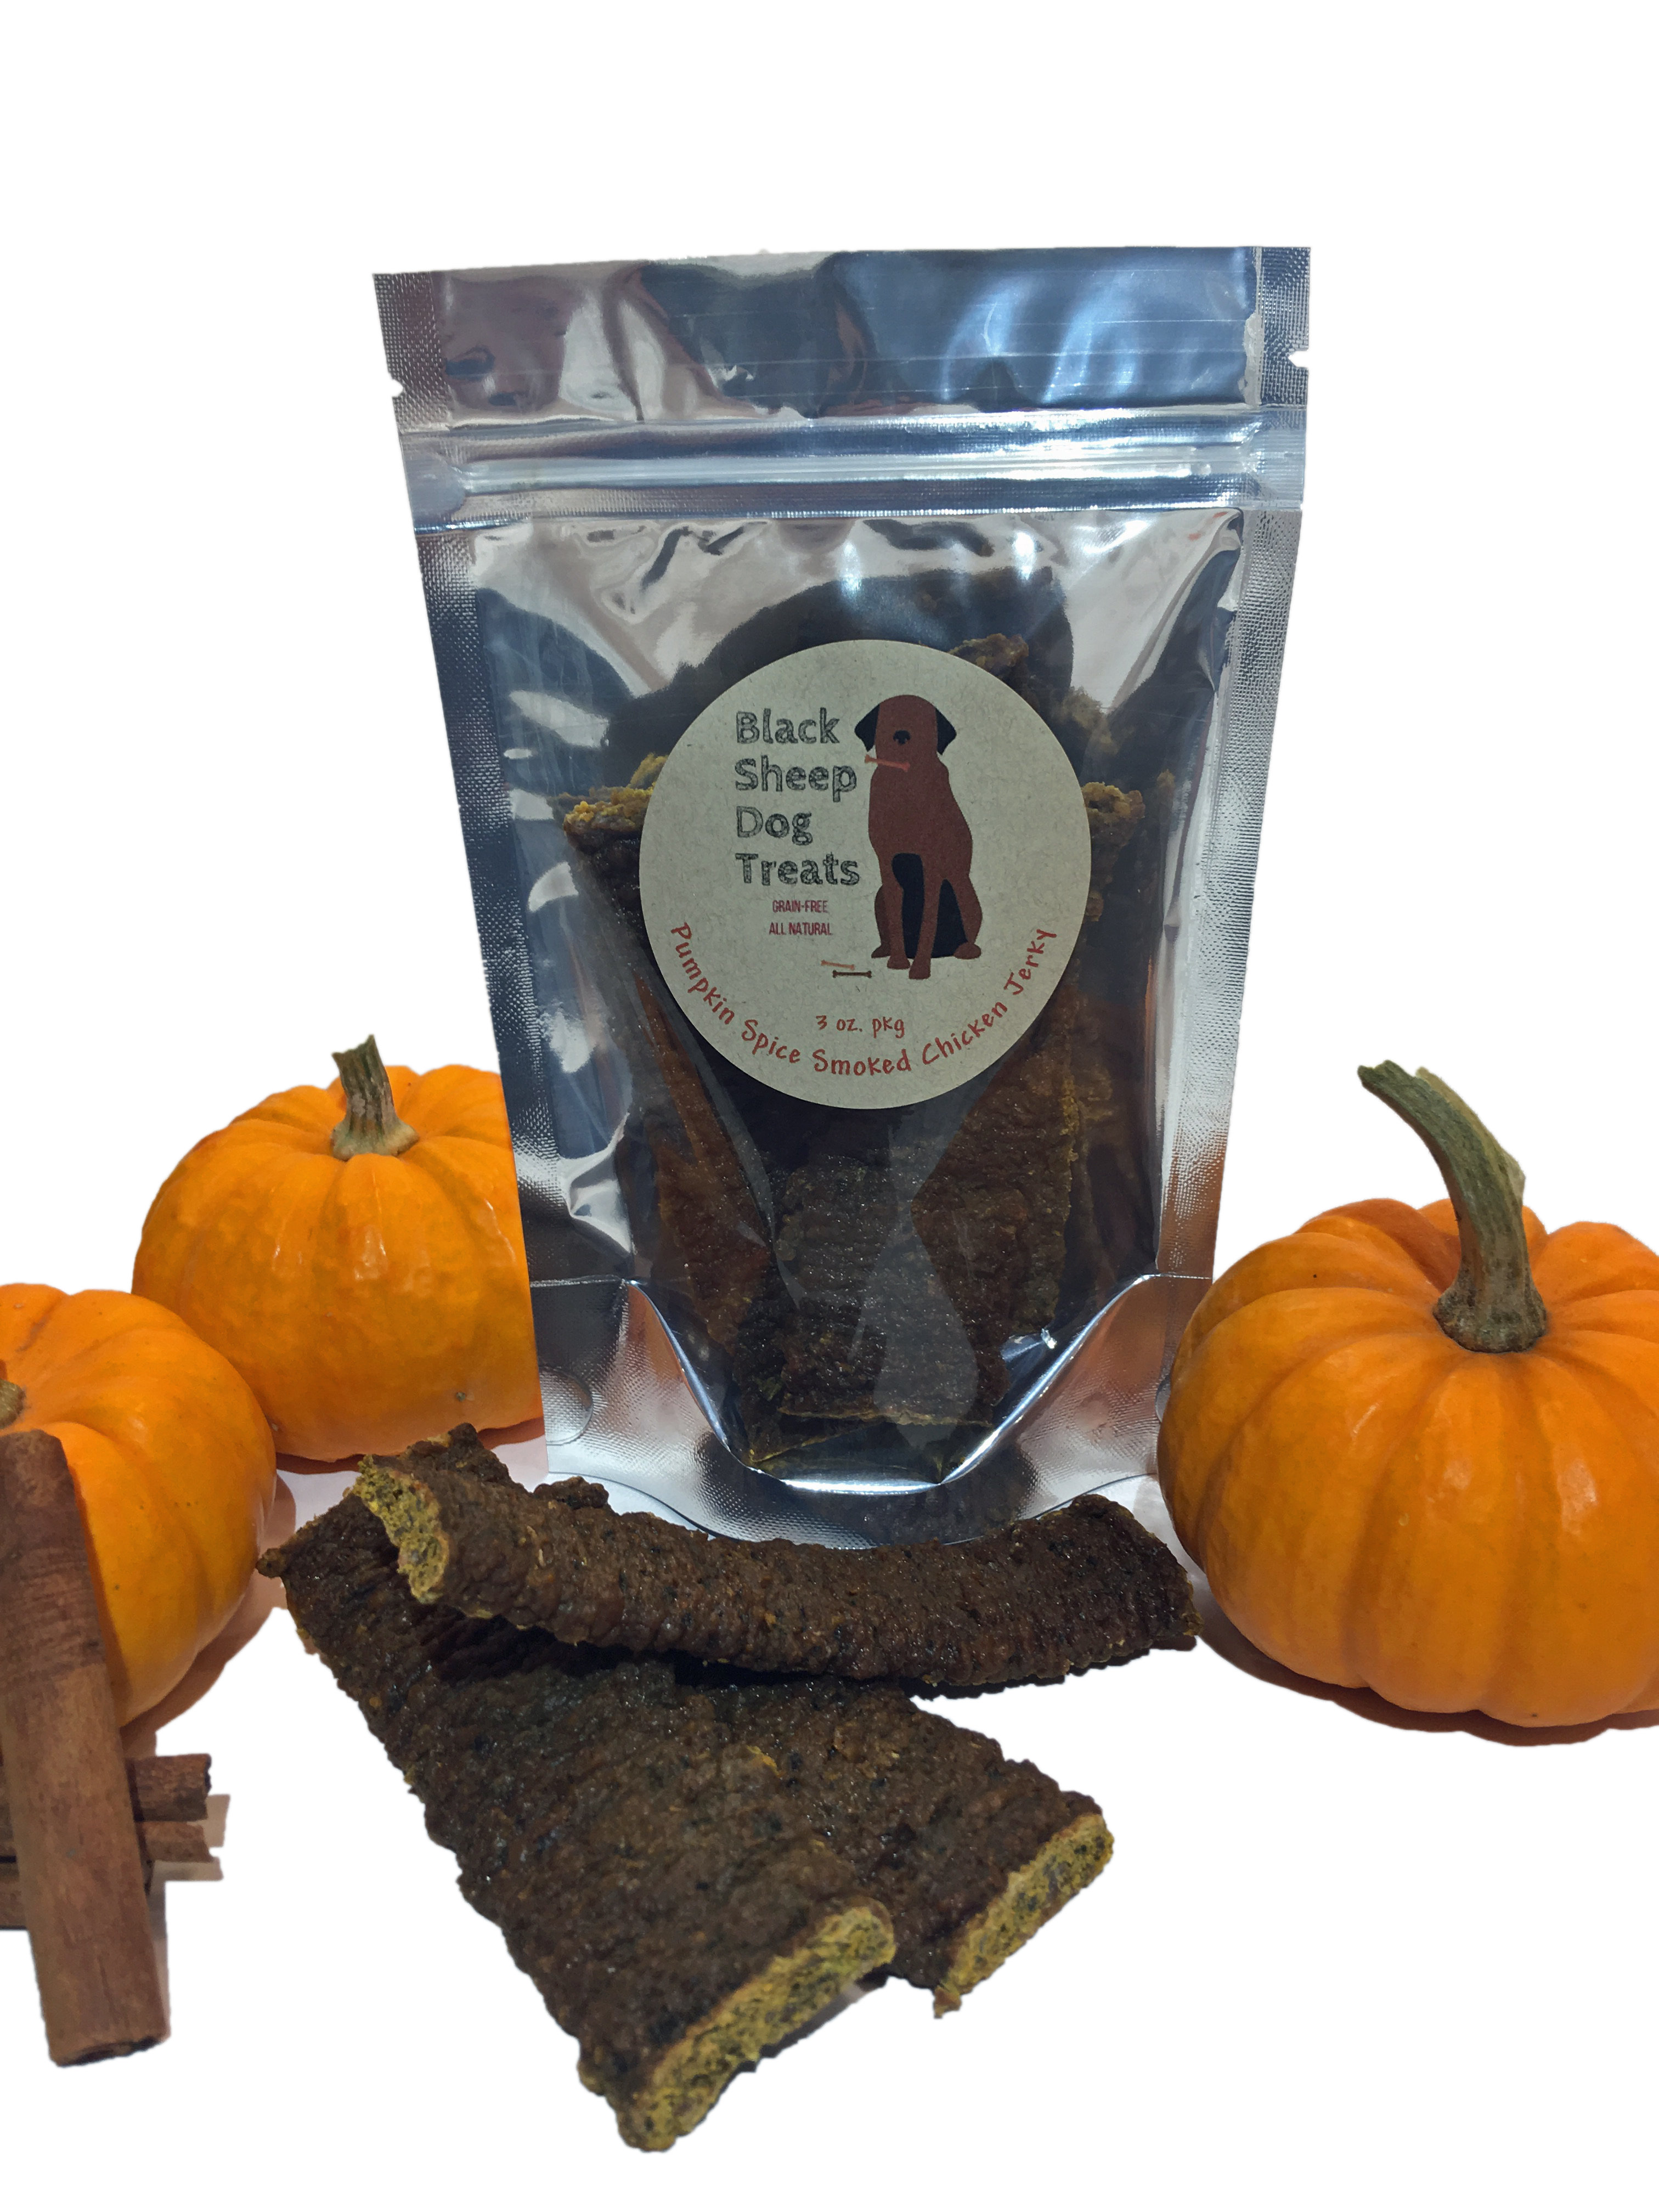 Pumpkin Spice Smoked Chicken Jerky 00008